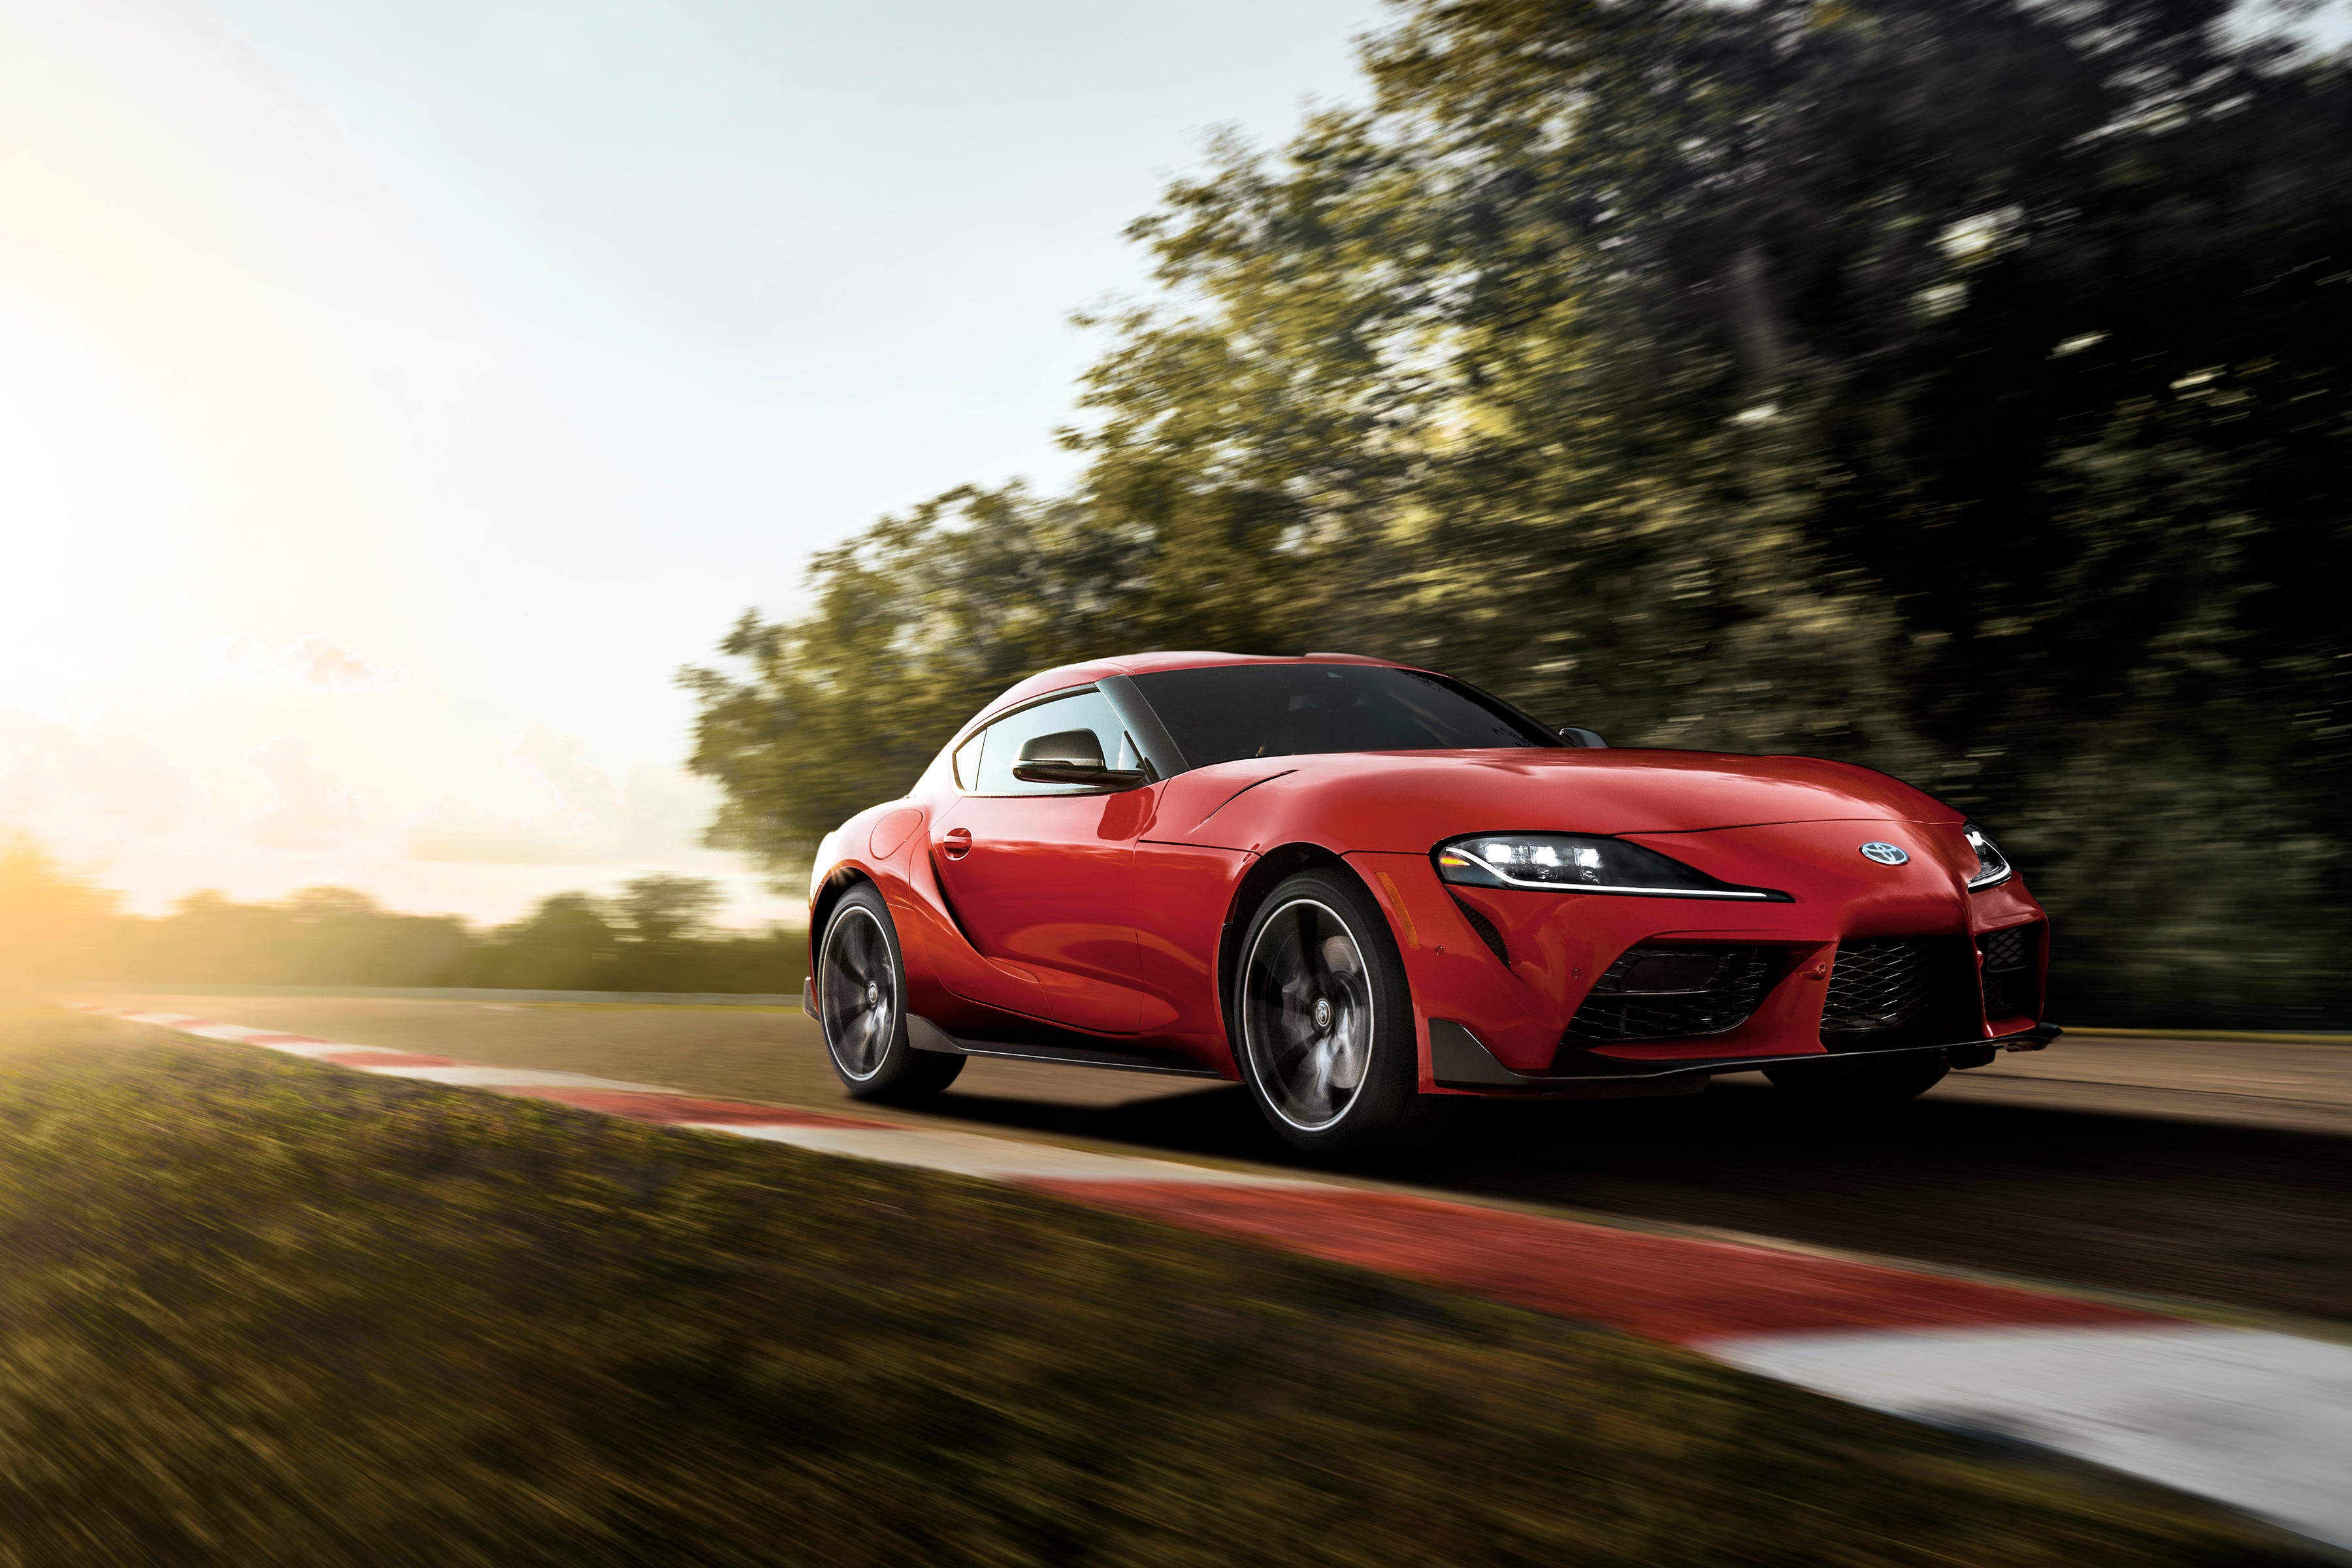 Toyota Supra gets new life: 'Totally lit' sports car debuts at 2019 Detroit auto show